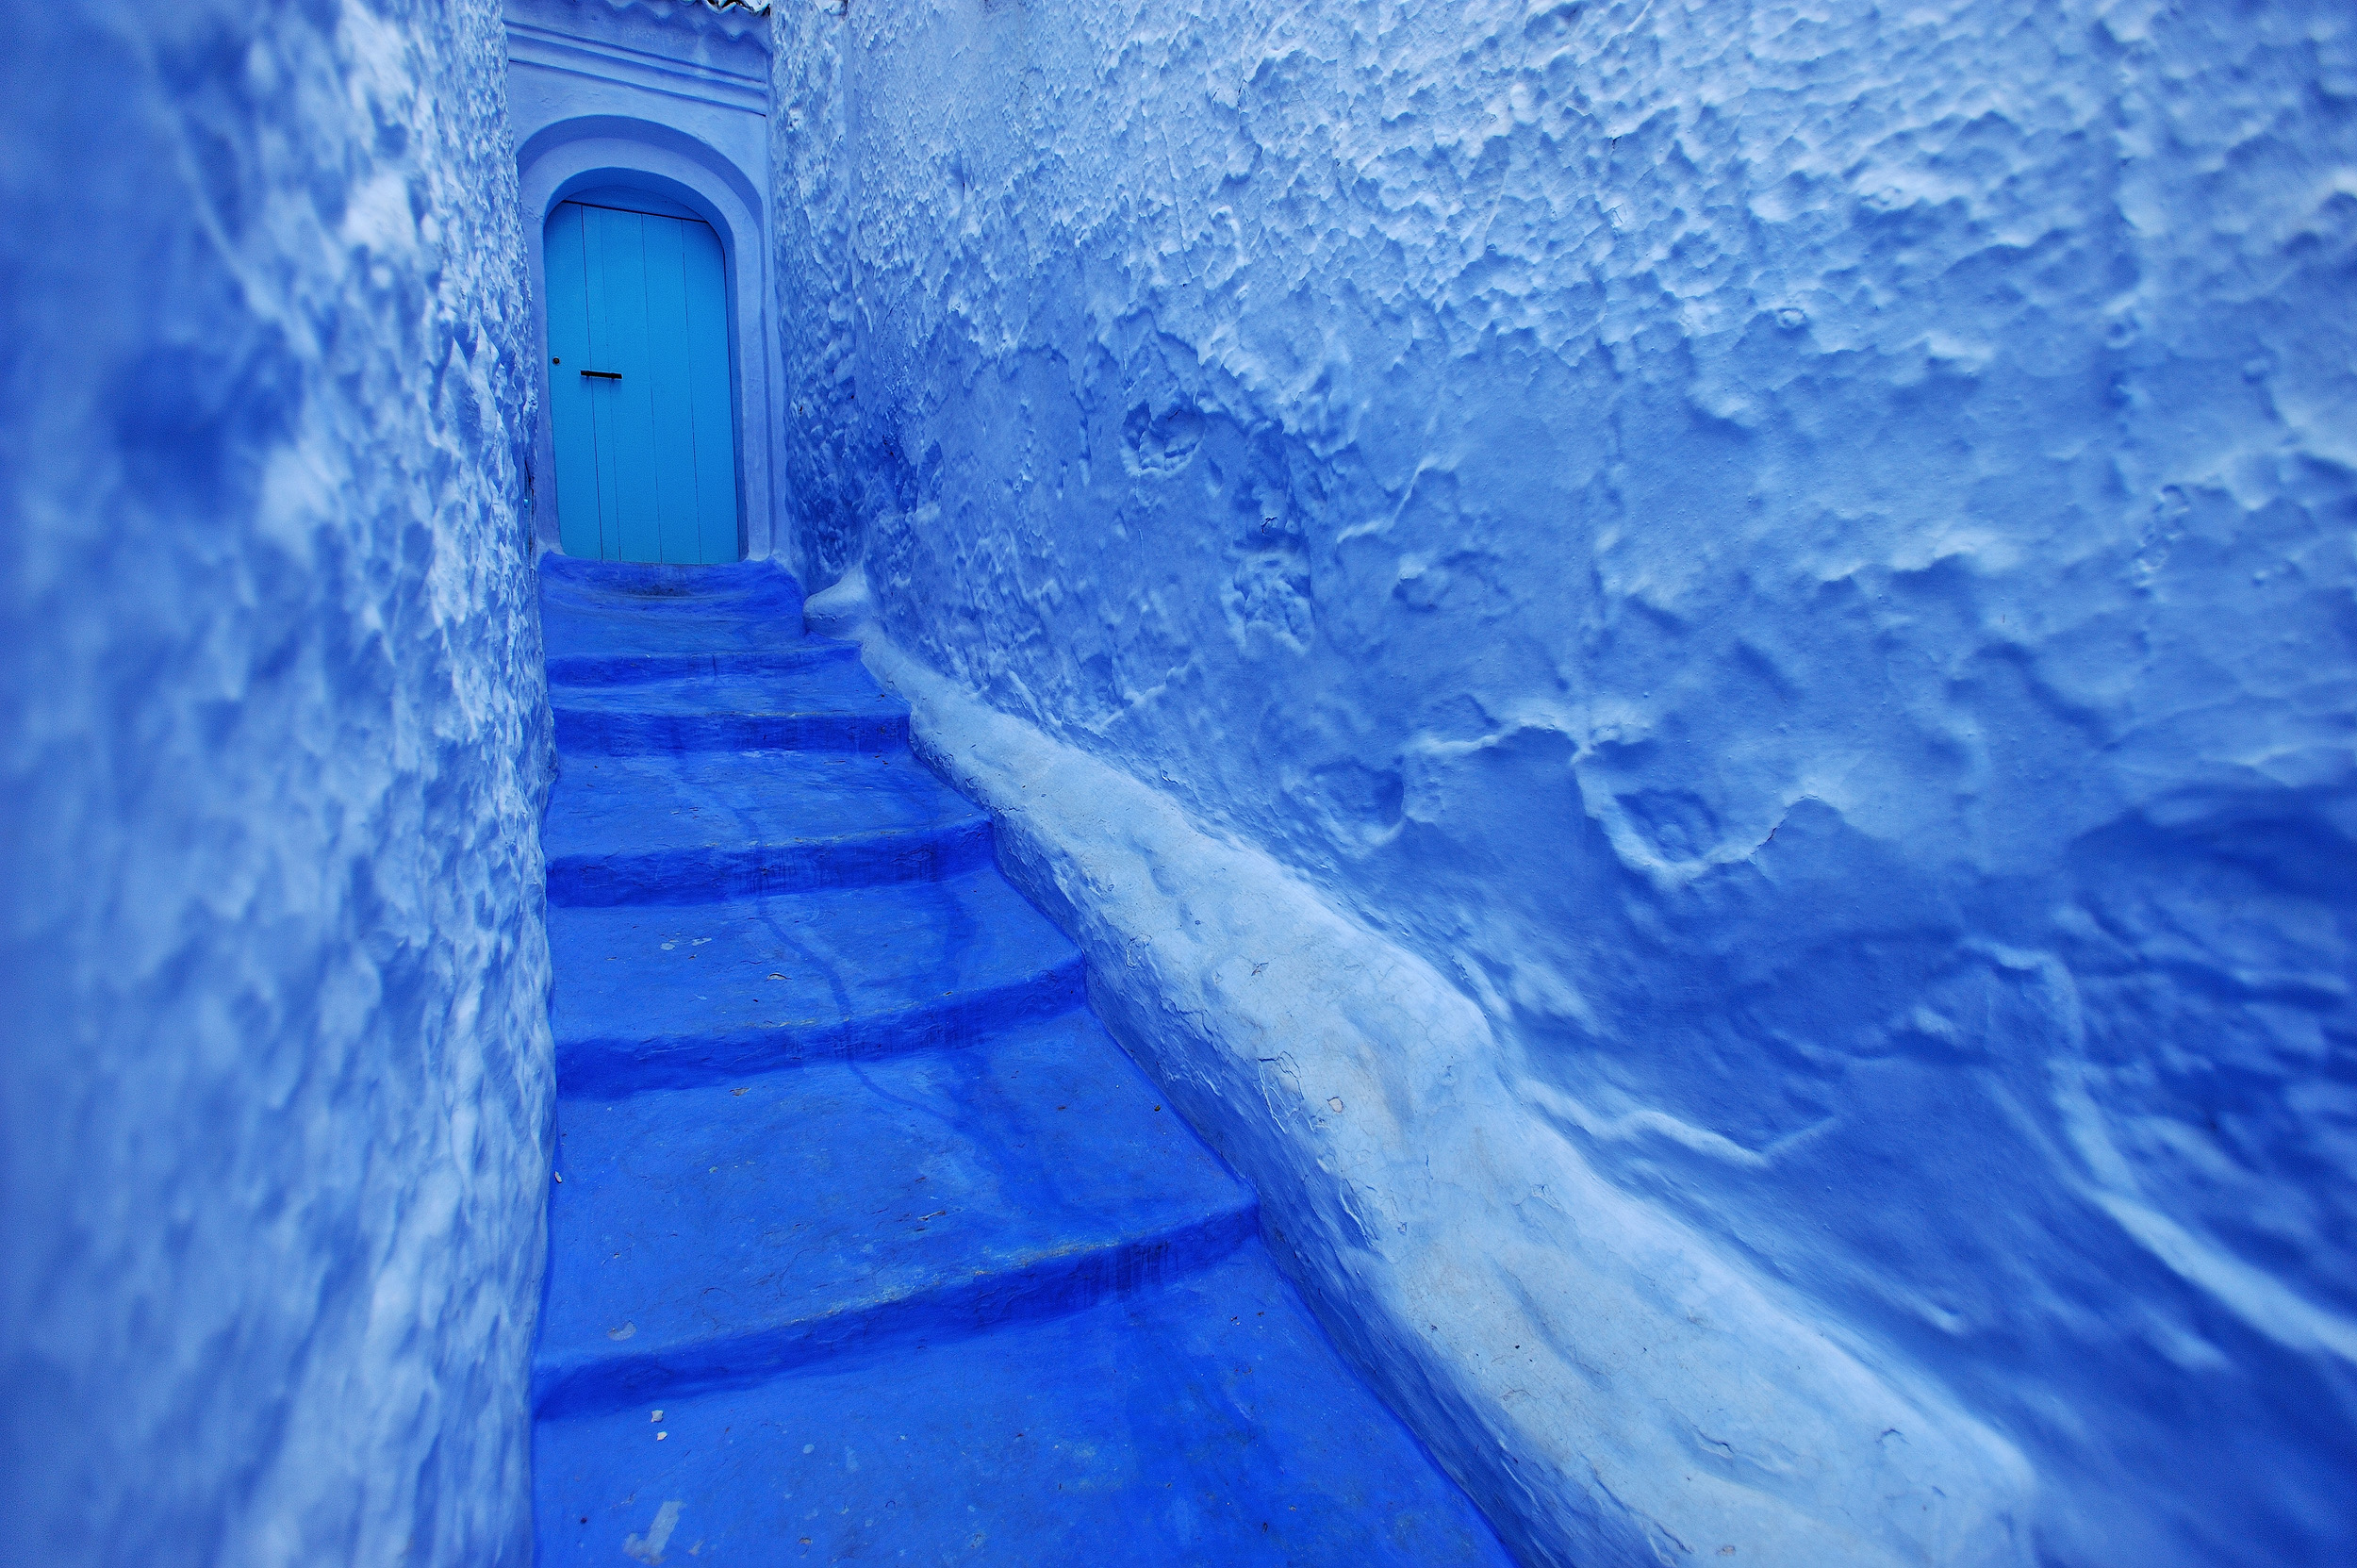 The Blue Door   A small street and door in the incredible blue town of Chefchaouen in the Rif Mountains